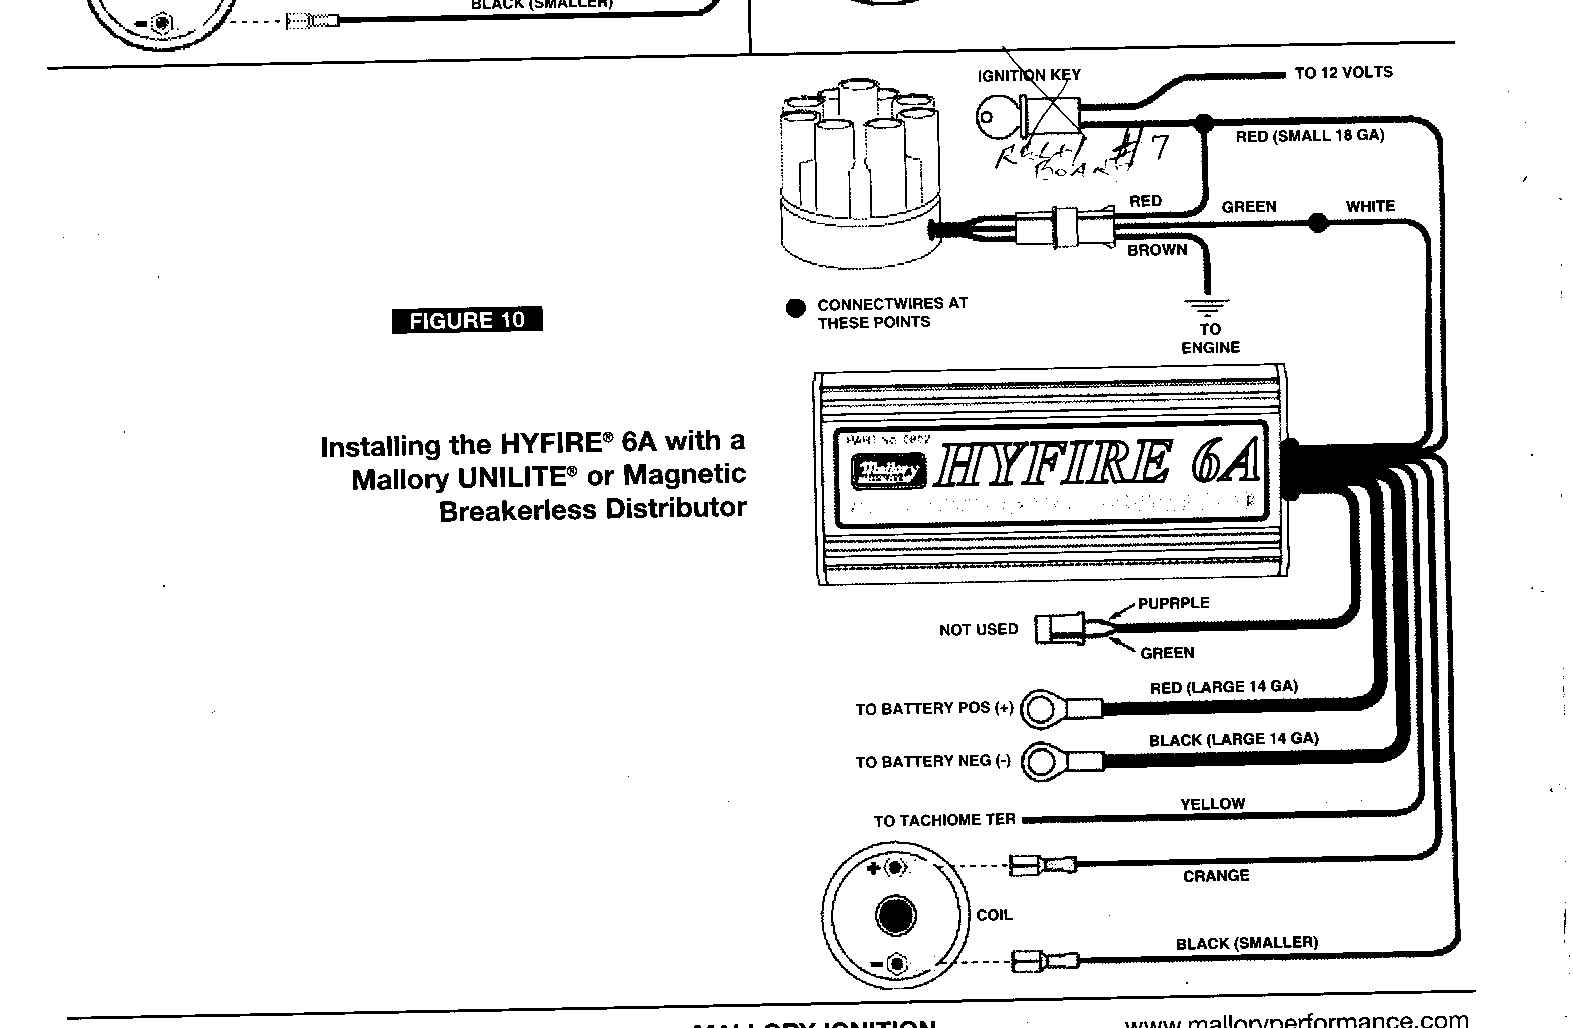 Mallory Distributor Wiring Schematic - Wiring Diagram